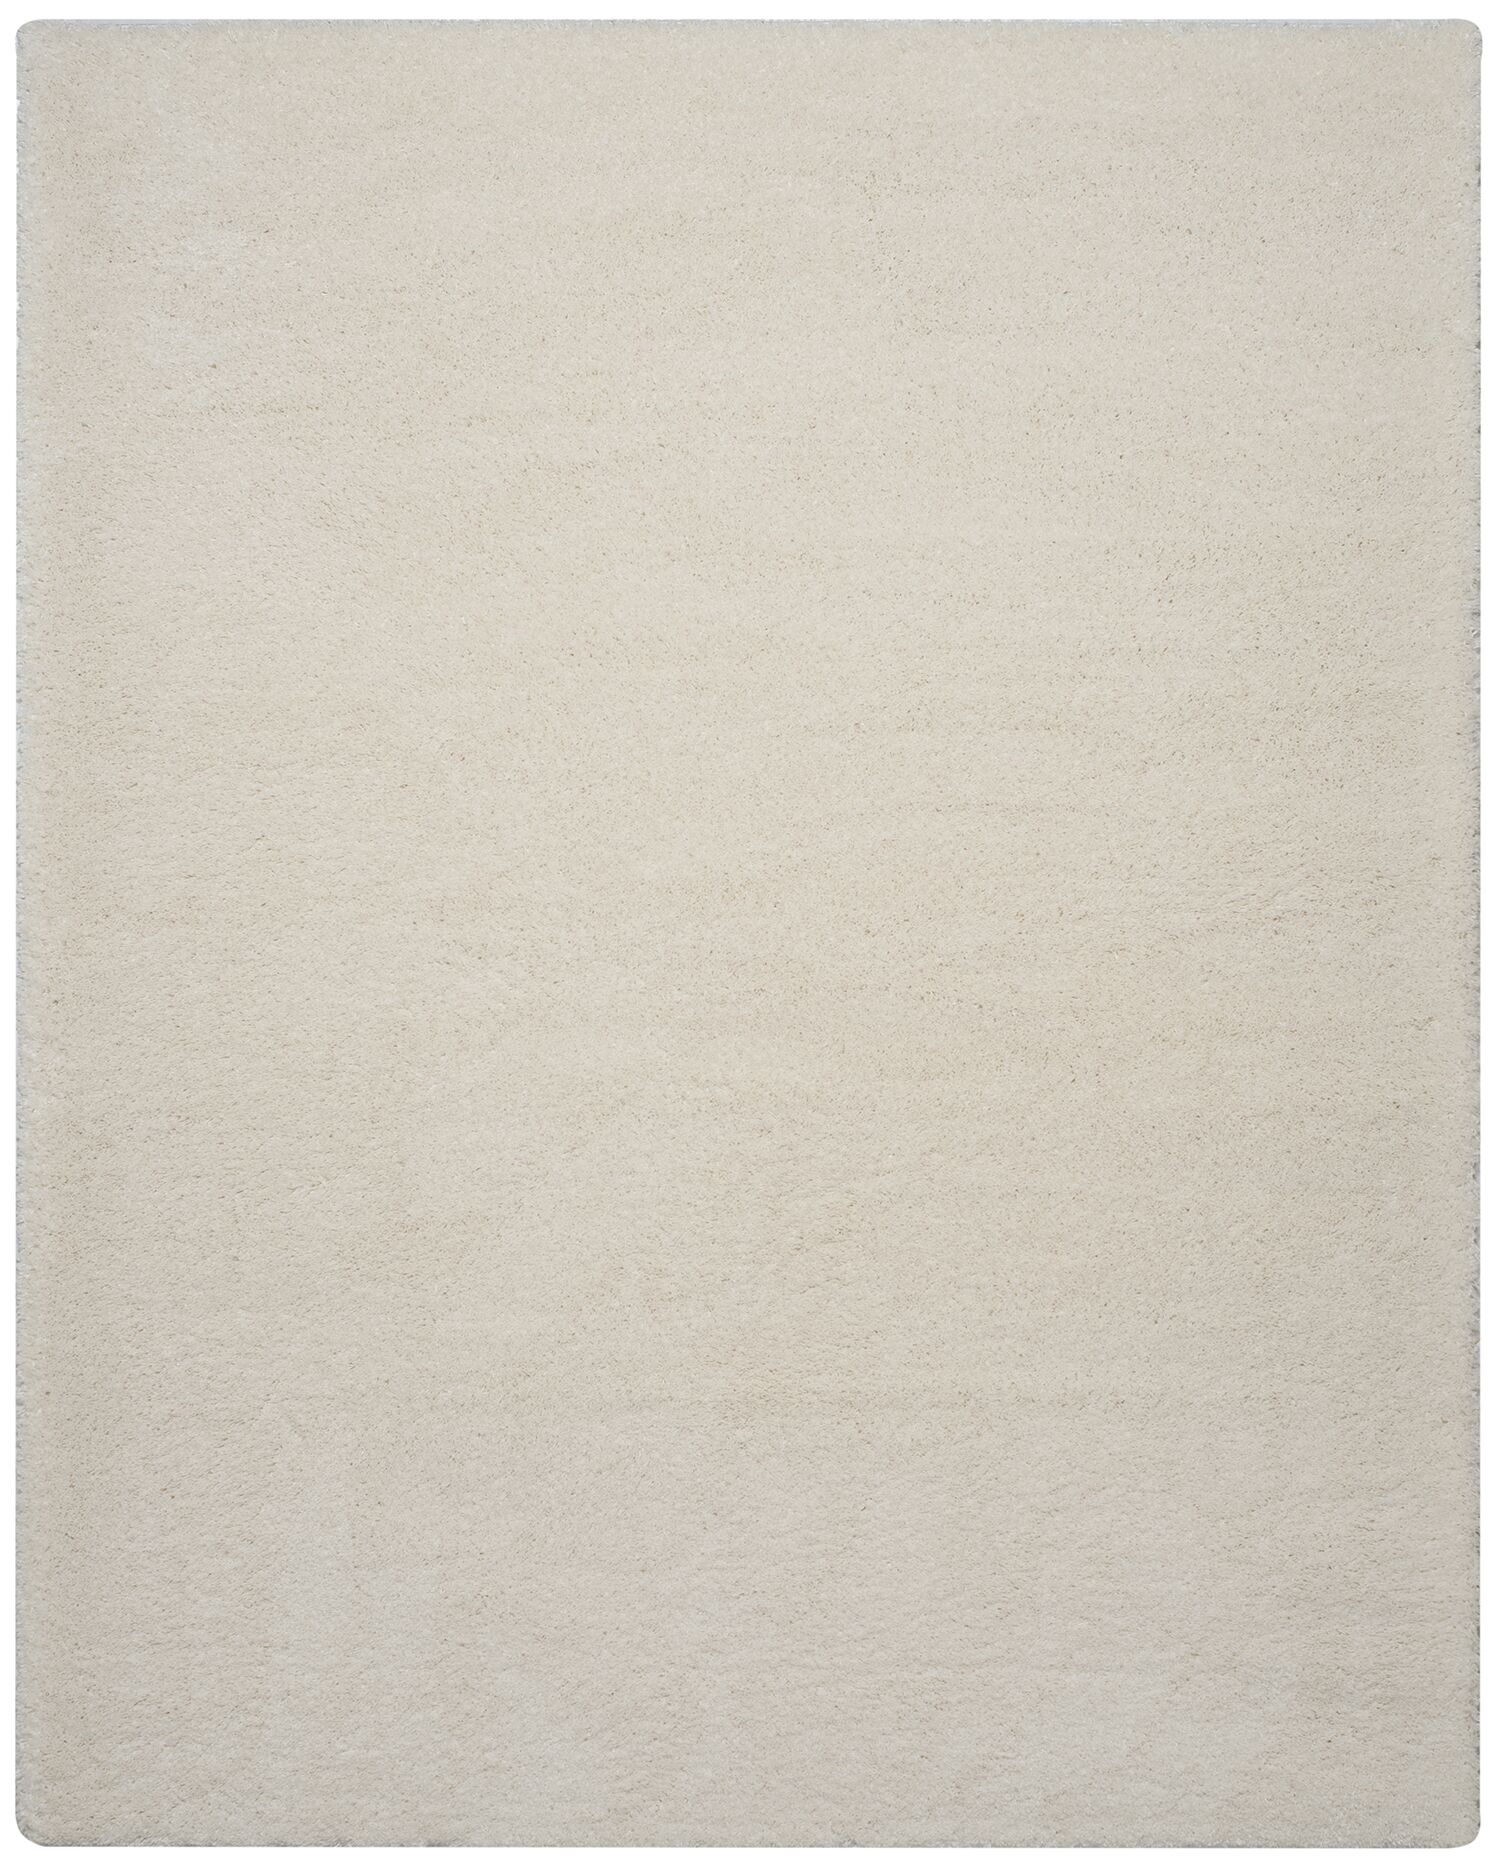 Hornell Hand-Tufted Area Rug Rug Size: Rectangle 8' x 10'